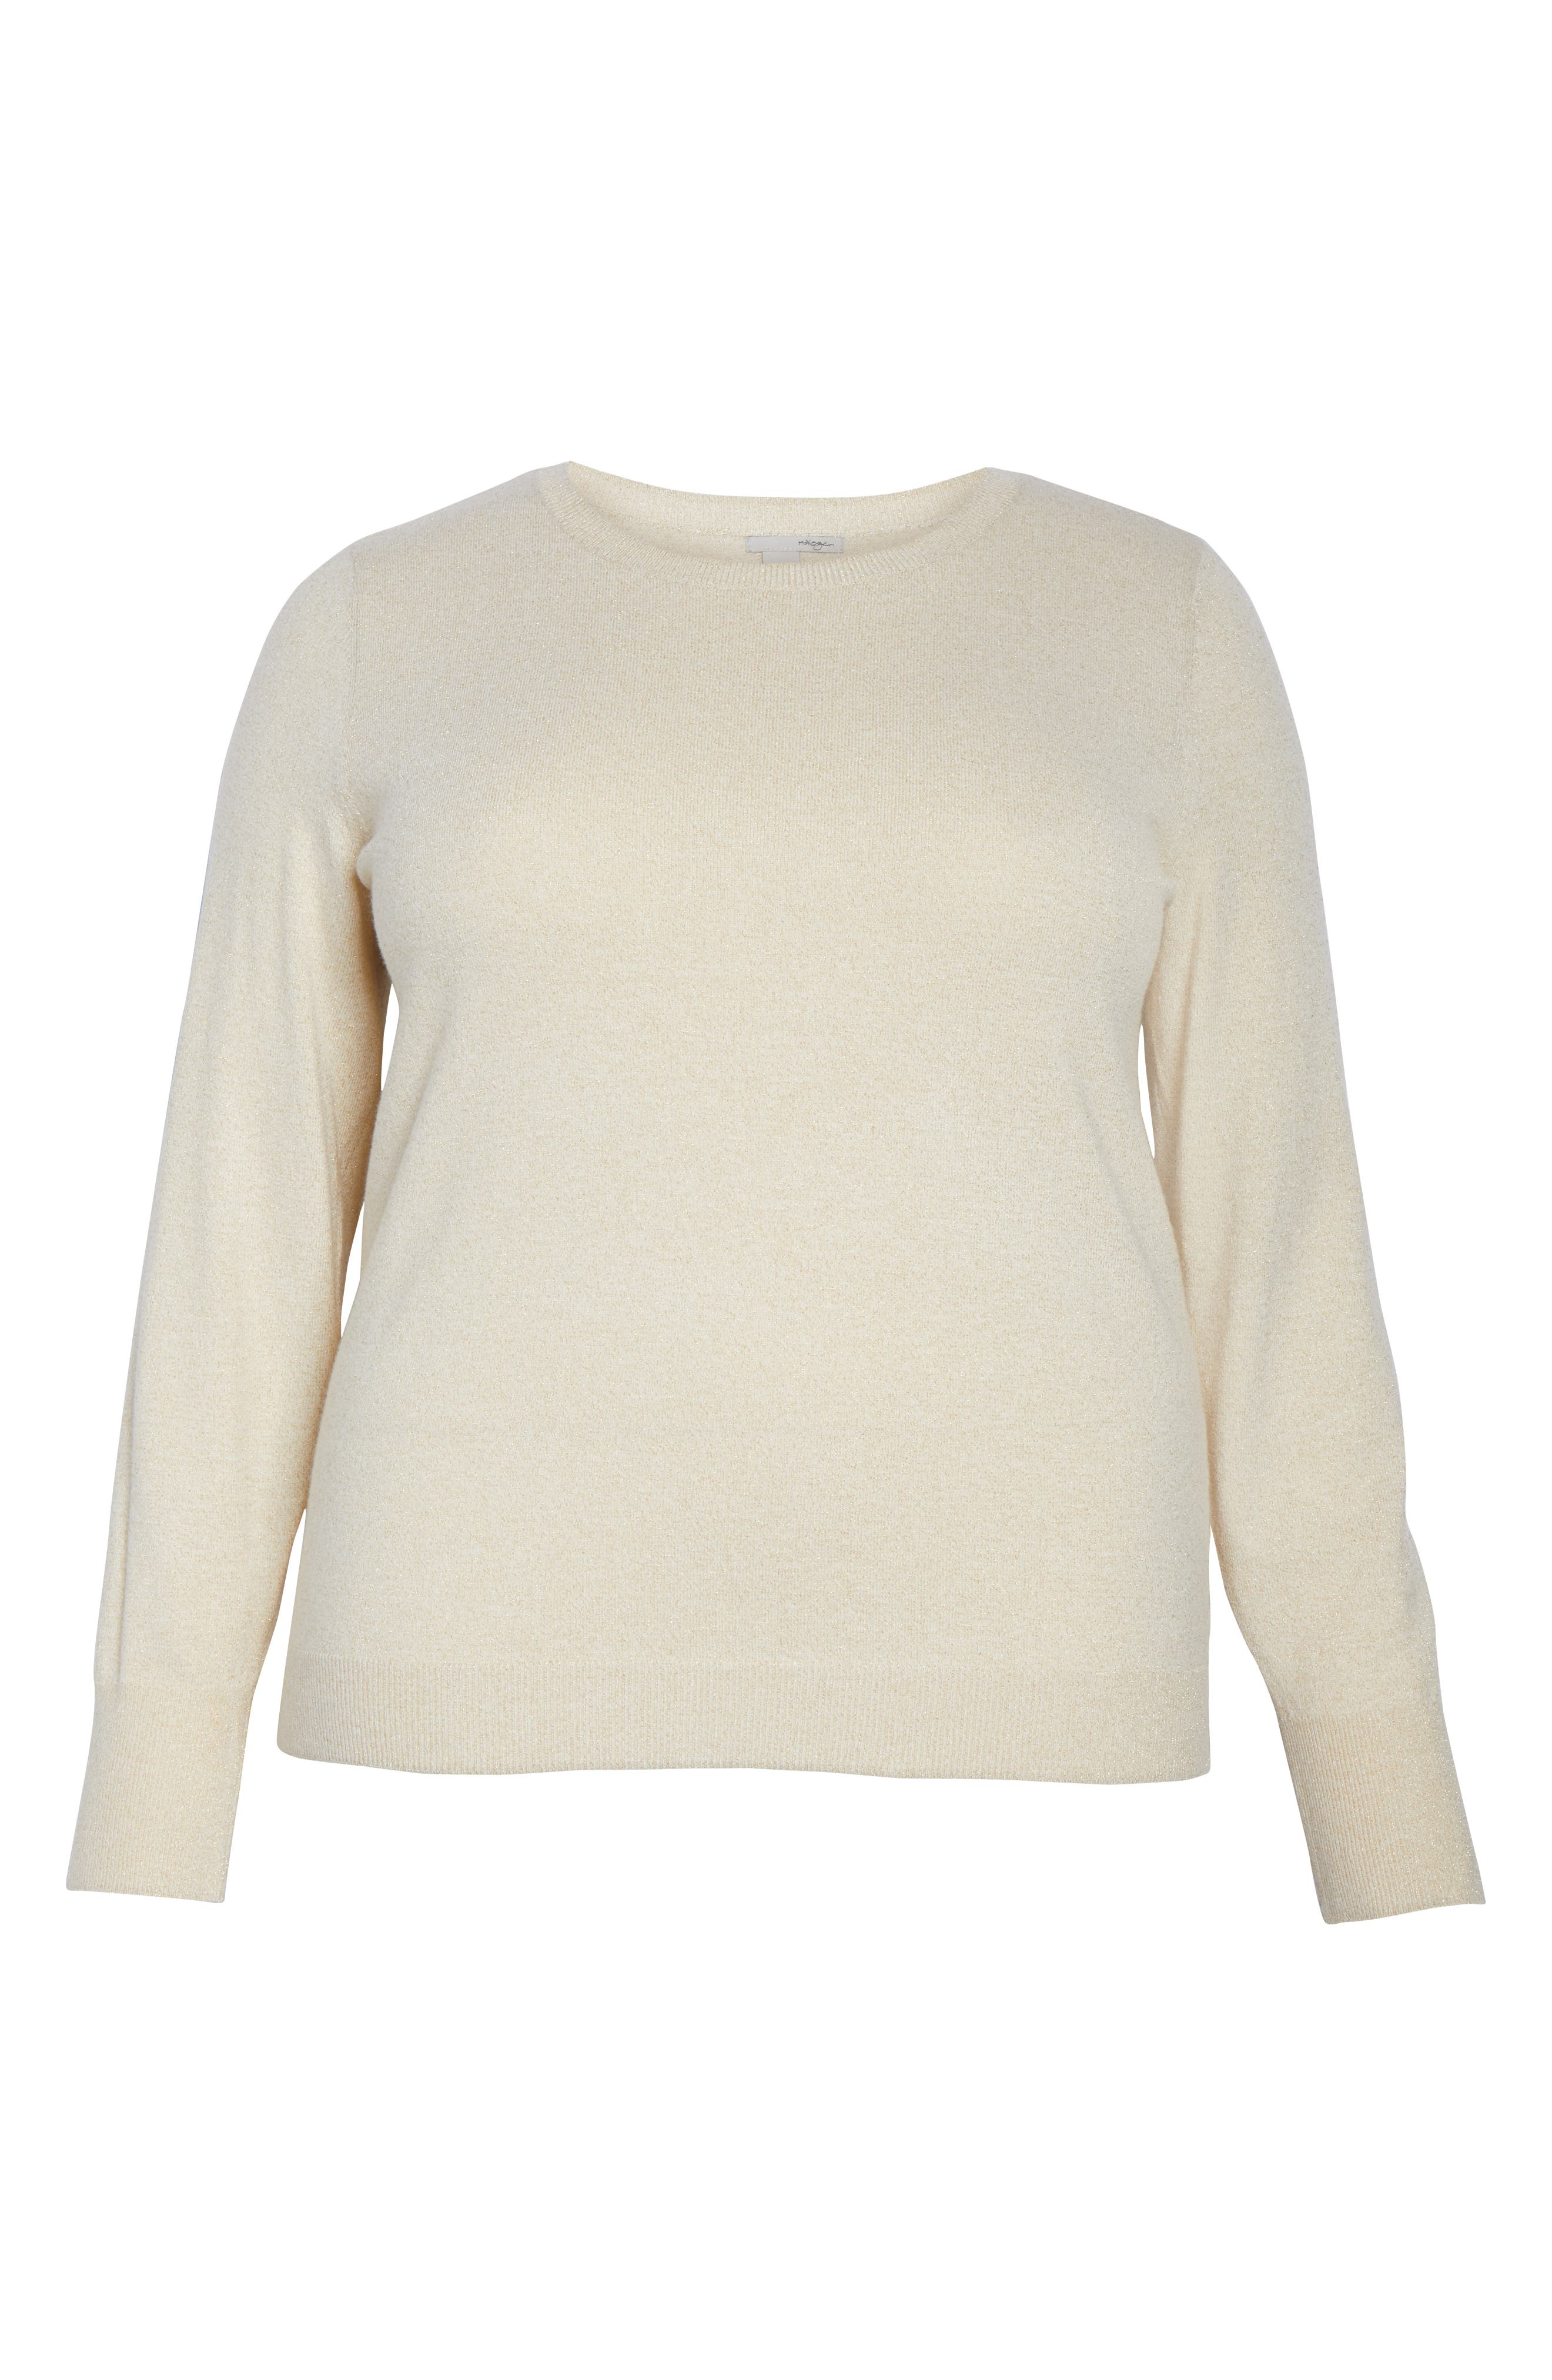 Shimmer Knit Sweater,                             Alternate thumbnail 6, color,                             OATMEAL